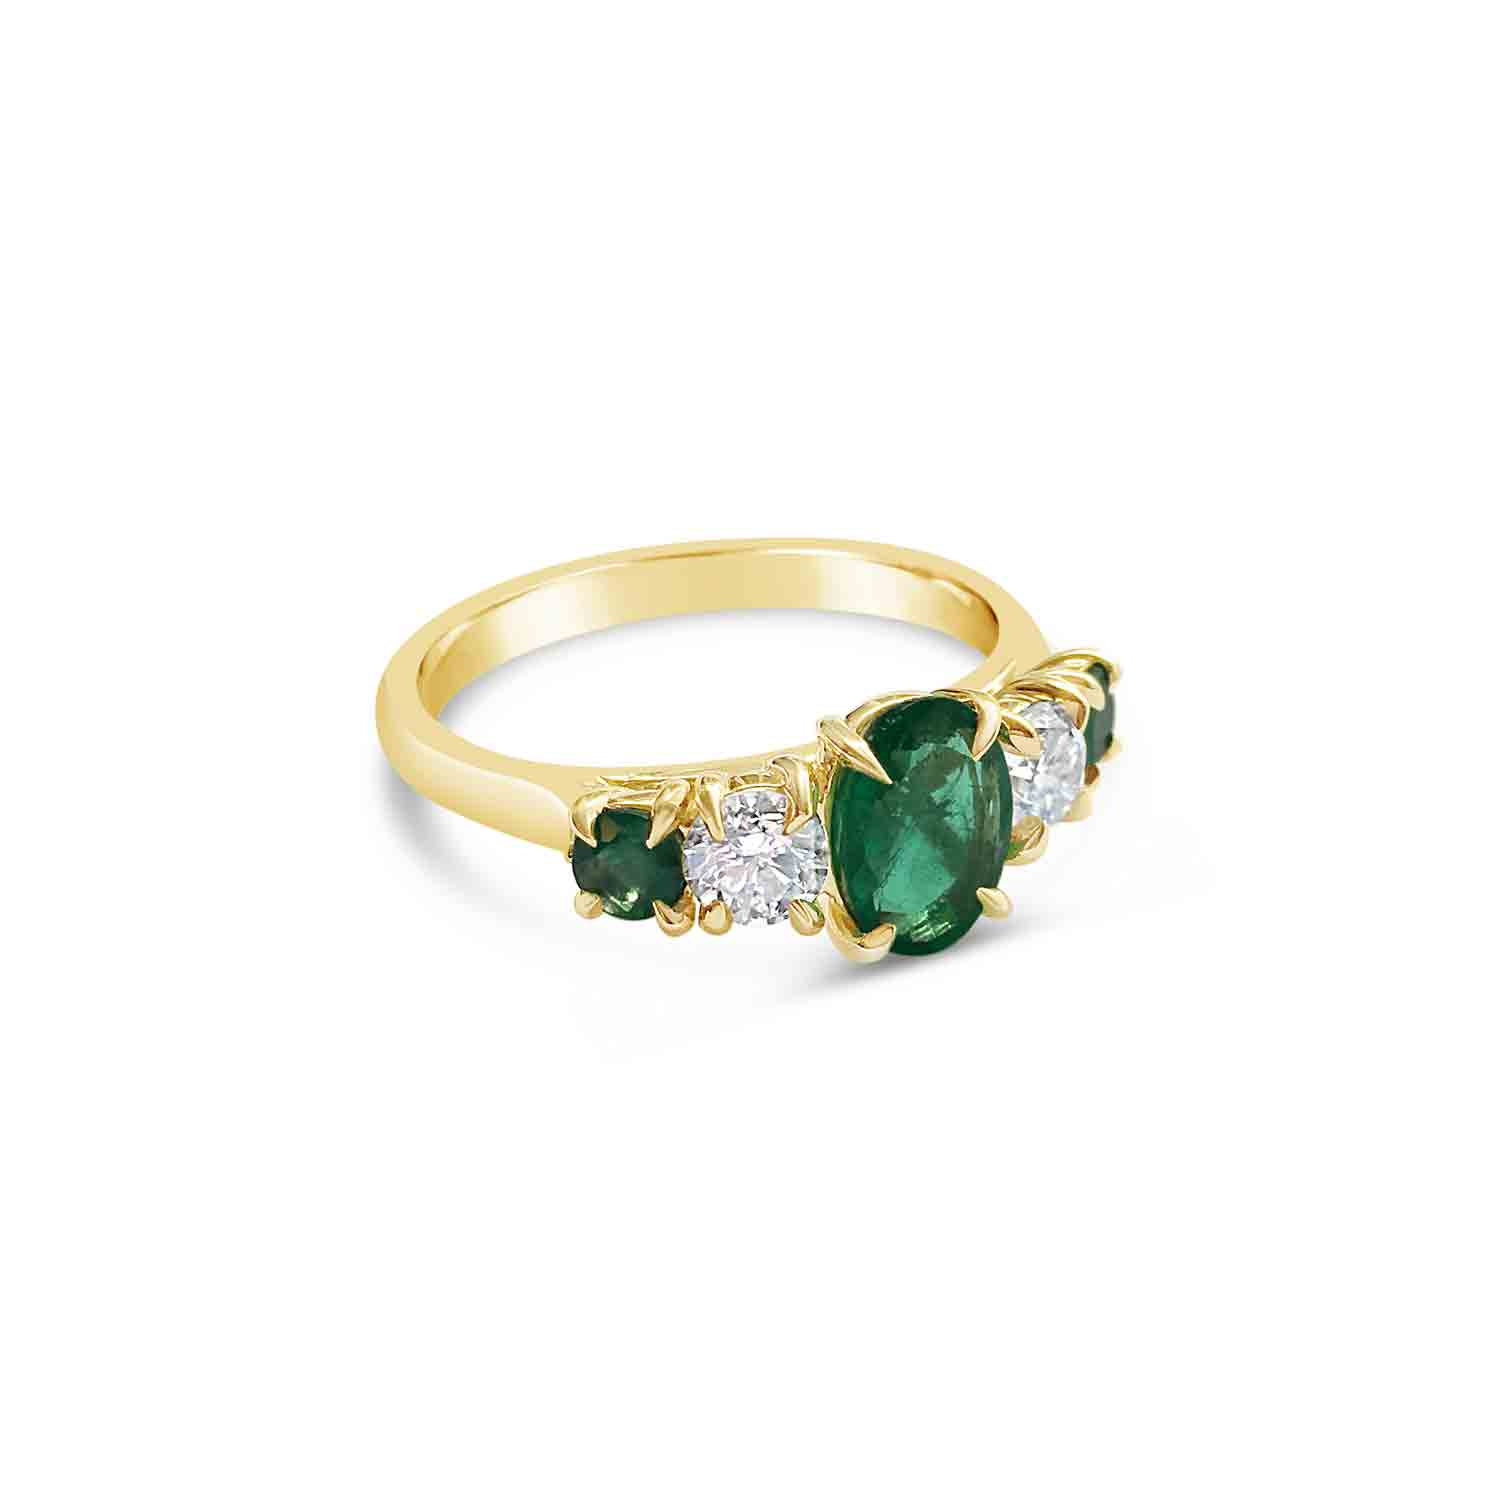 Bespoke emerald and diamond claw-set five-stone ring, mounted in 18ct yellow gold